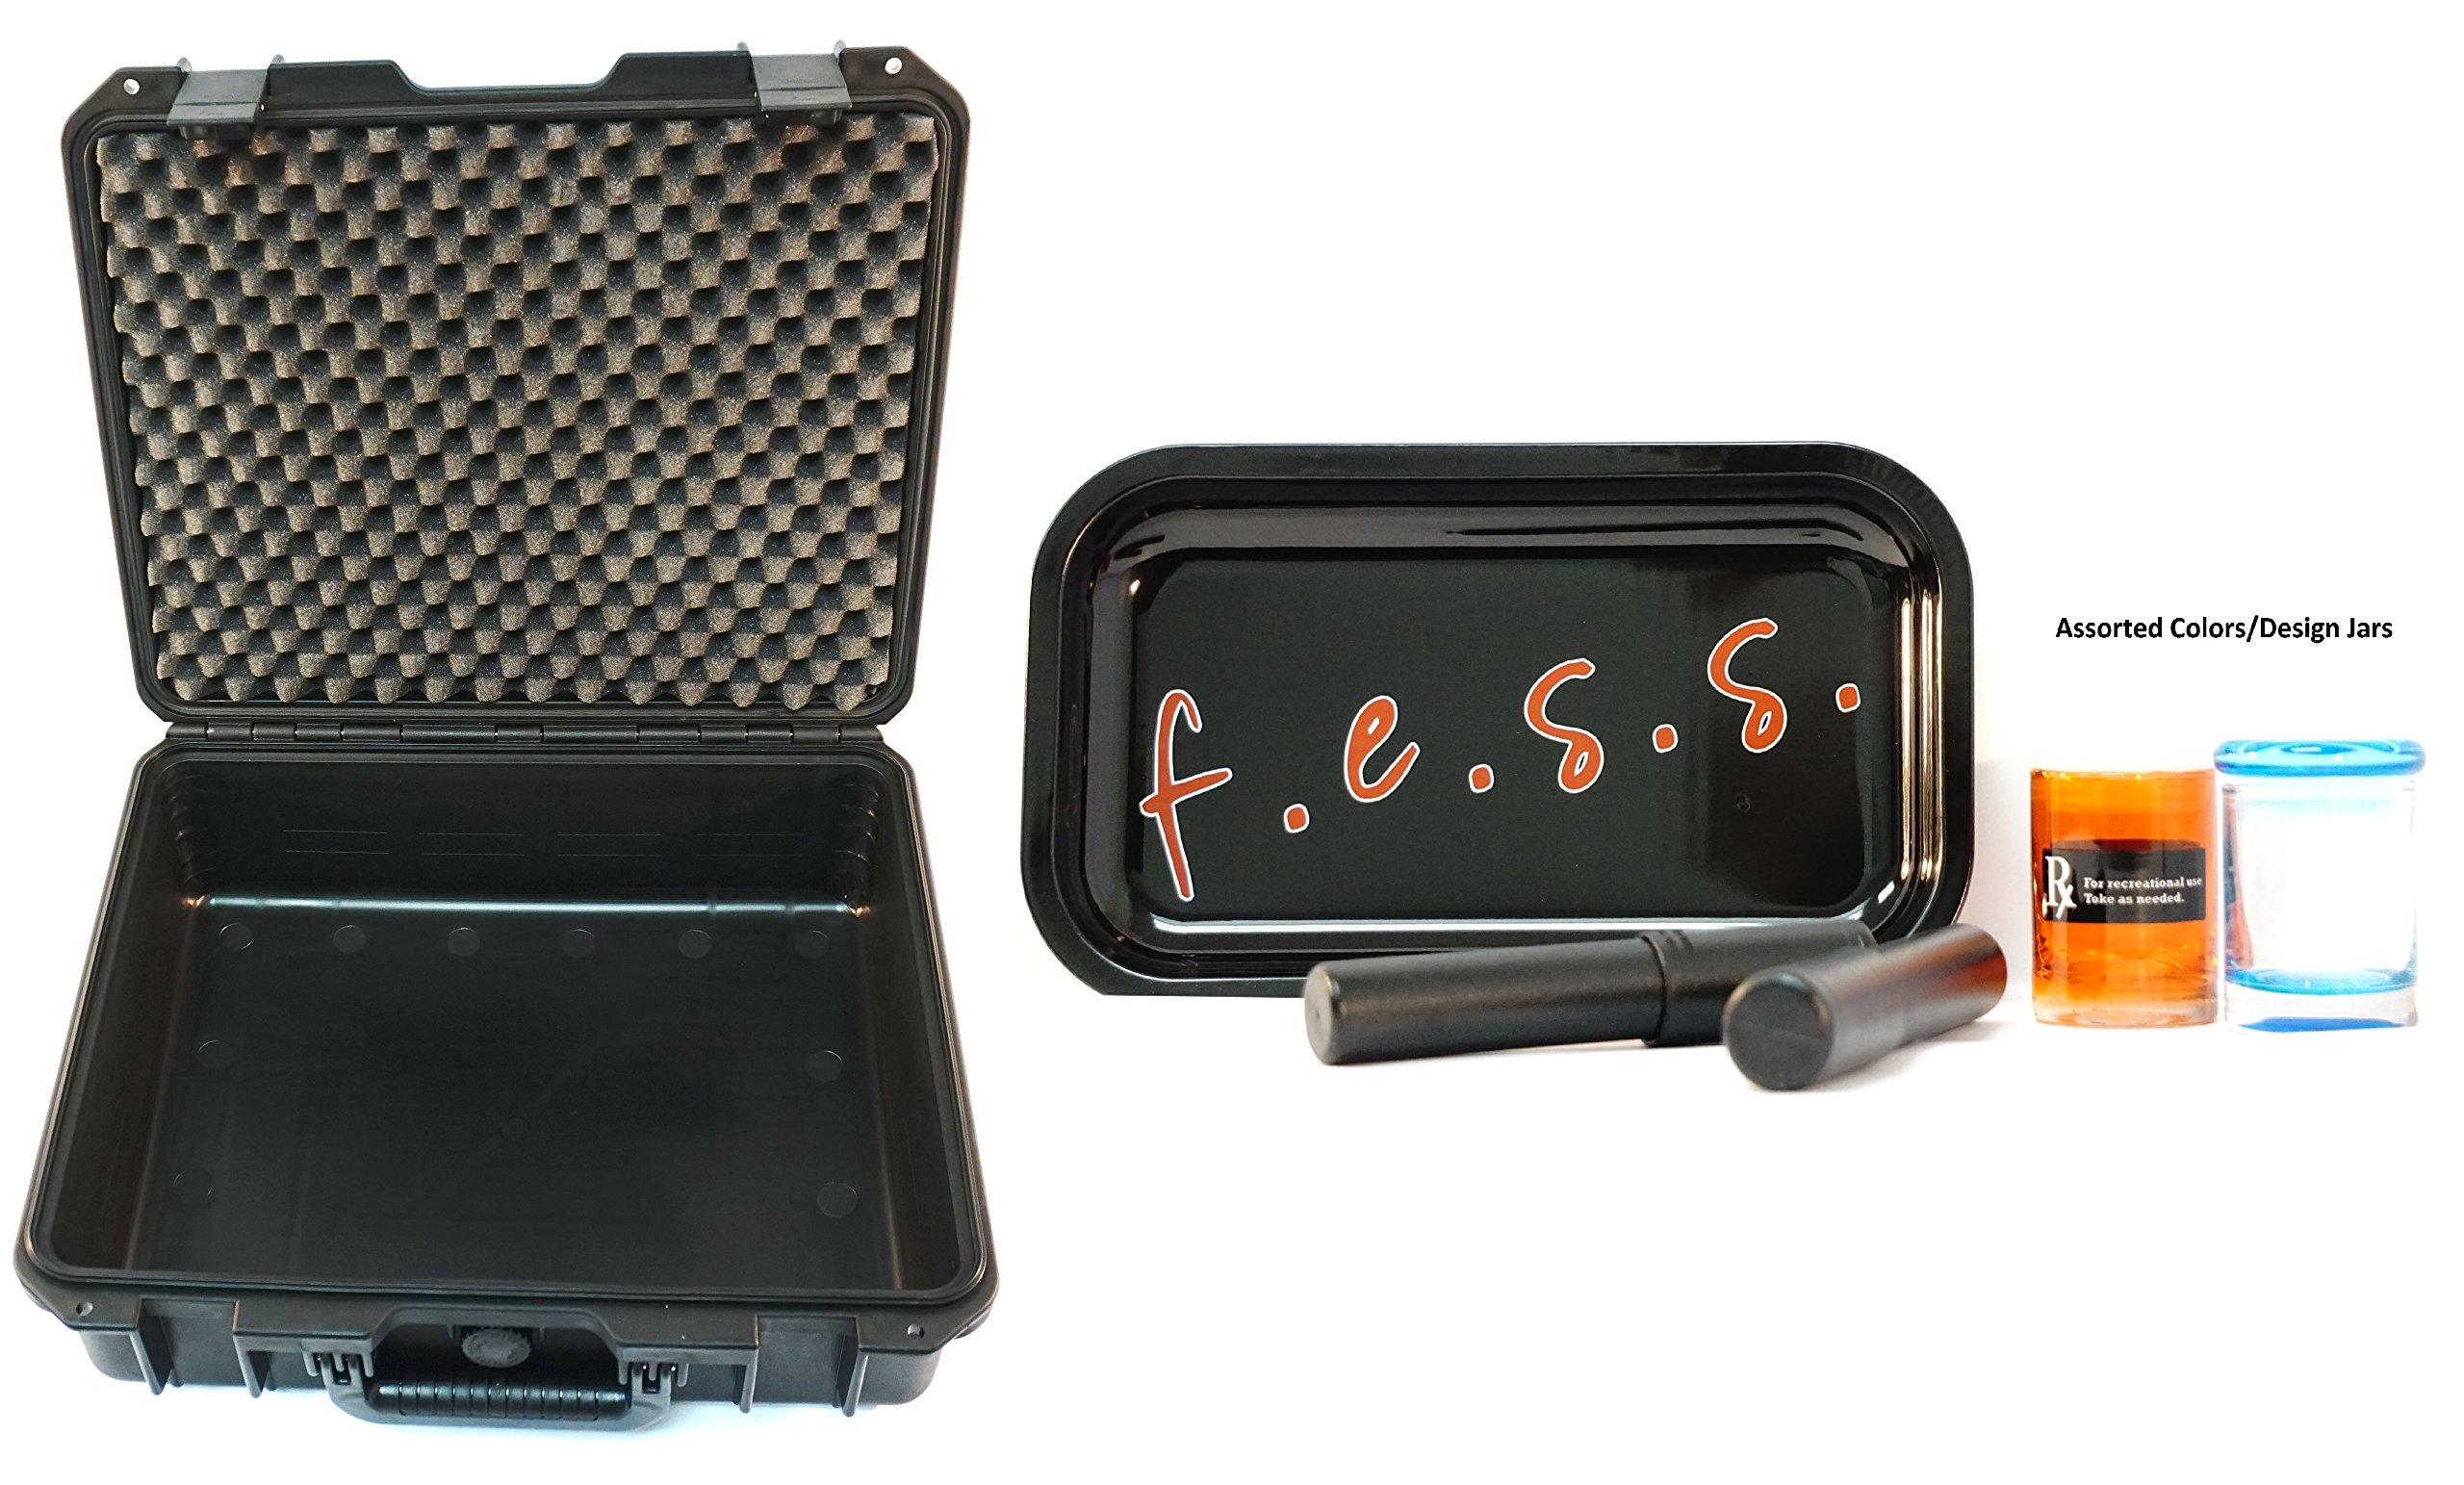 F.e.s.s Fess Large Odor Resistant Case 17'' Travel Storage Stash Box Container - Fits Stash Jar , Grinder , Raw Cone or Papers, Fess Lighter and Includes Accessories (2 Jars, 2 Tubes, 1 Rolling Tray)